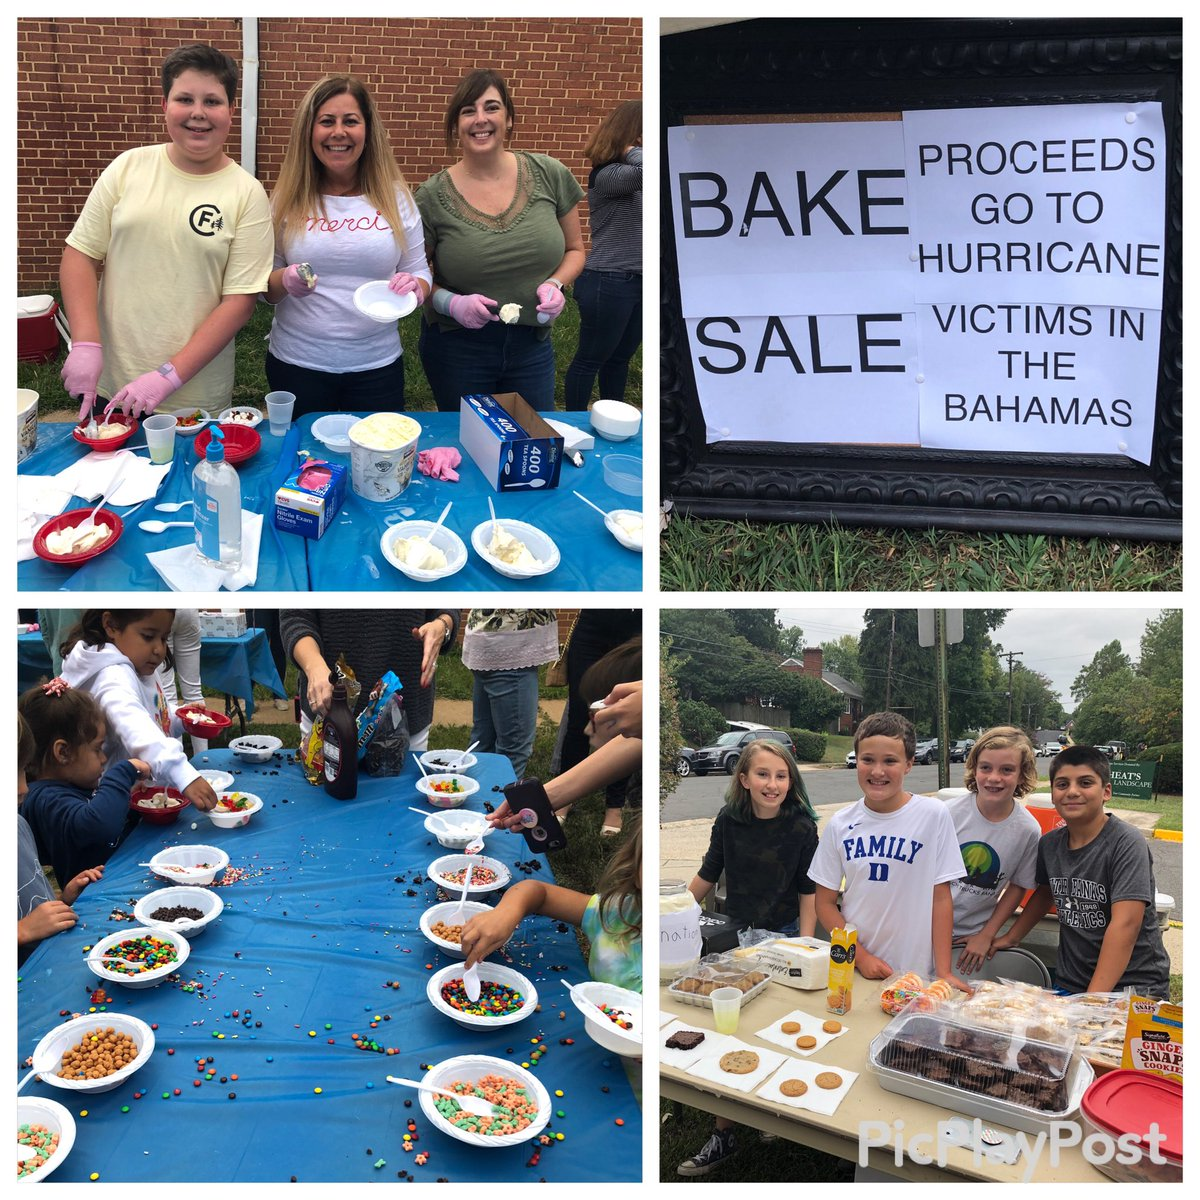 Last week was a busy one.  We had Back to School Night for Grades 1-5.  Our PTA  <a target='_blank' href='http://twitter.com/JamestownESPTA'>@JamestownESPTA</a> also sponsored our annual Ice Cream Social. Both events were well attended.  A special thank you to former students who asked to do a fundraiser for Hurricane Dorian victims. <a target='_blank' href='https://t.co/7cJzFUy49k'>https://t.co/7cJzFUy49k</a>